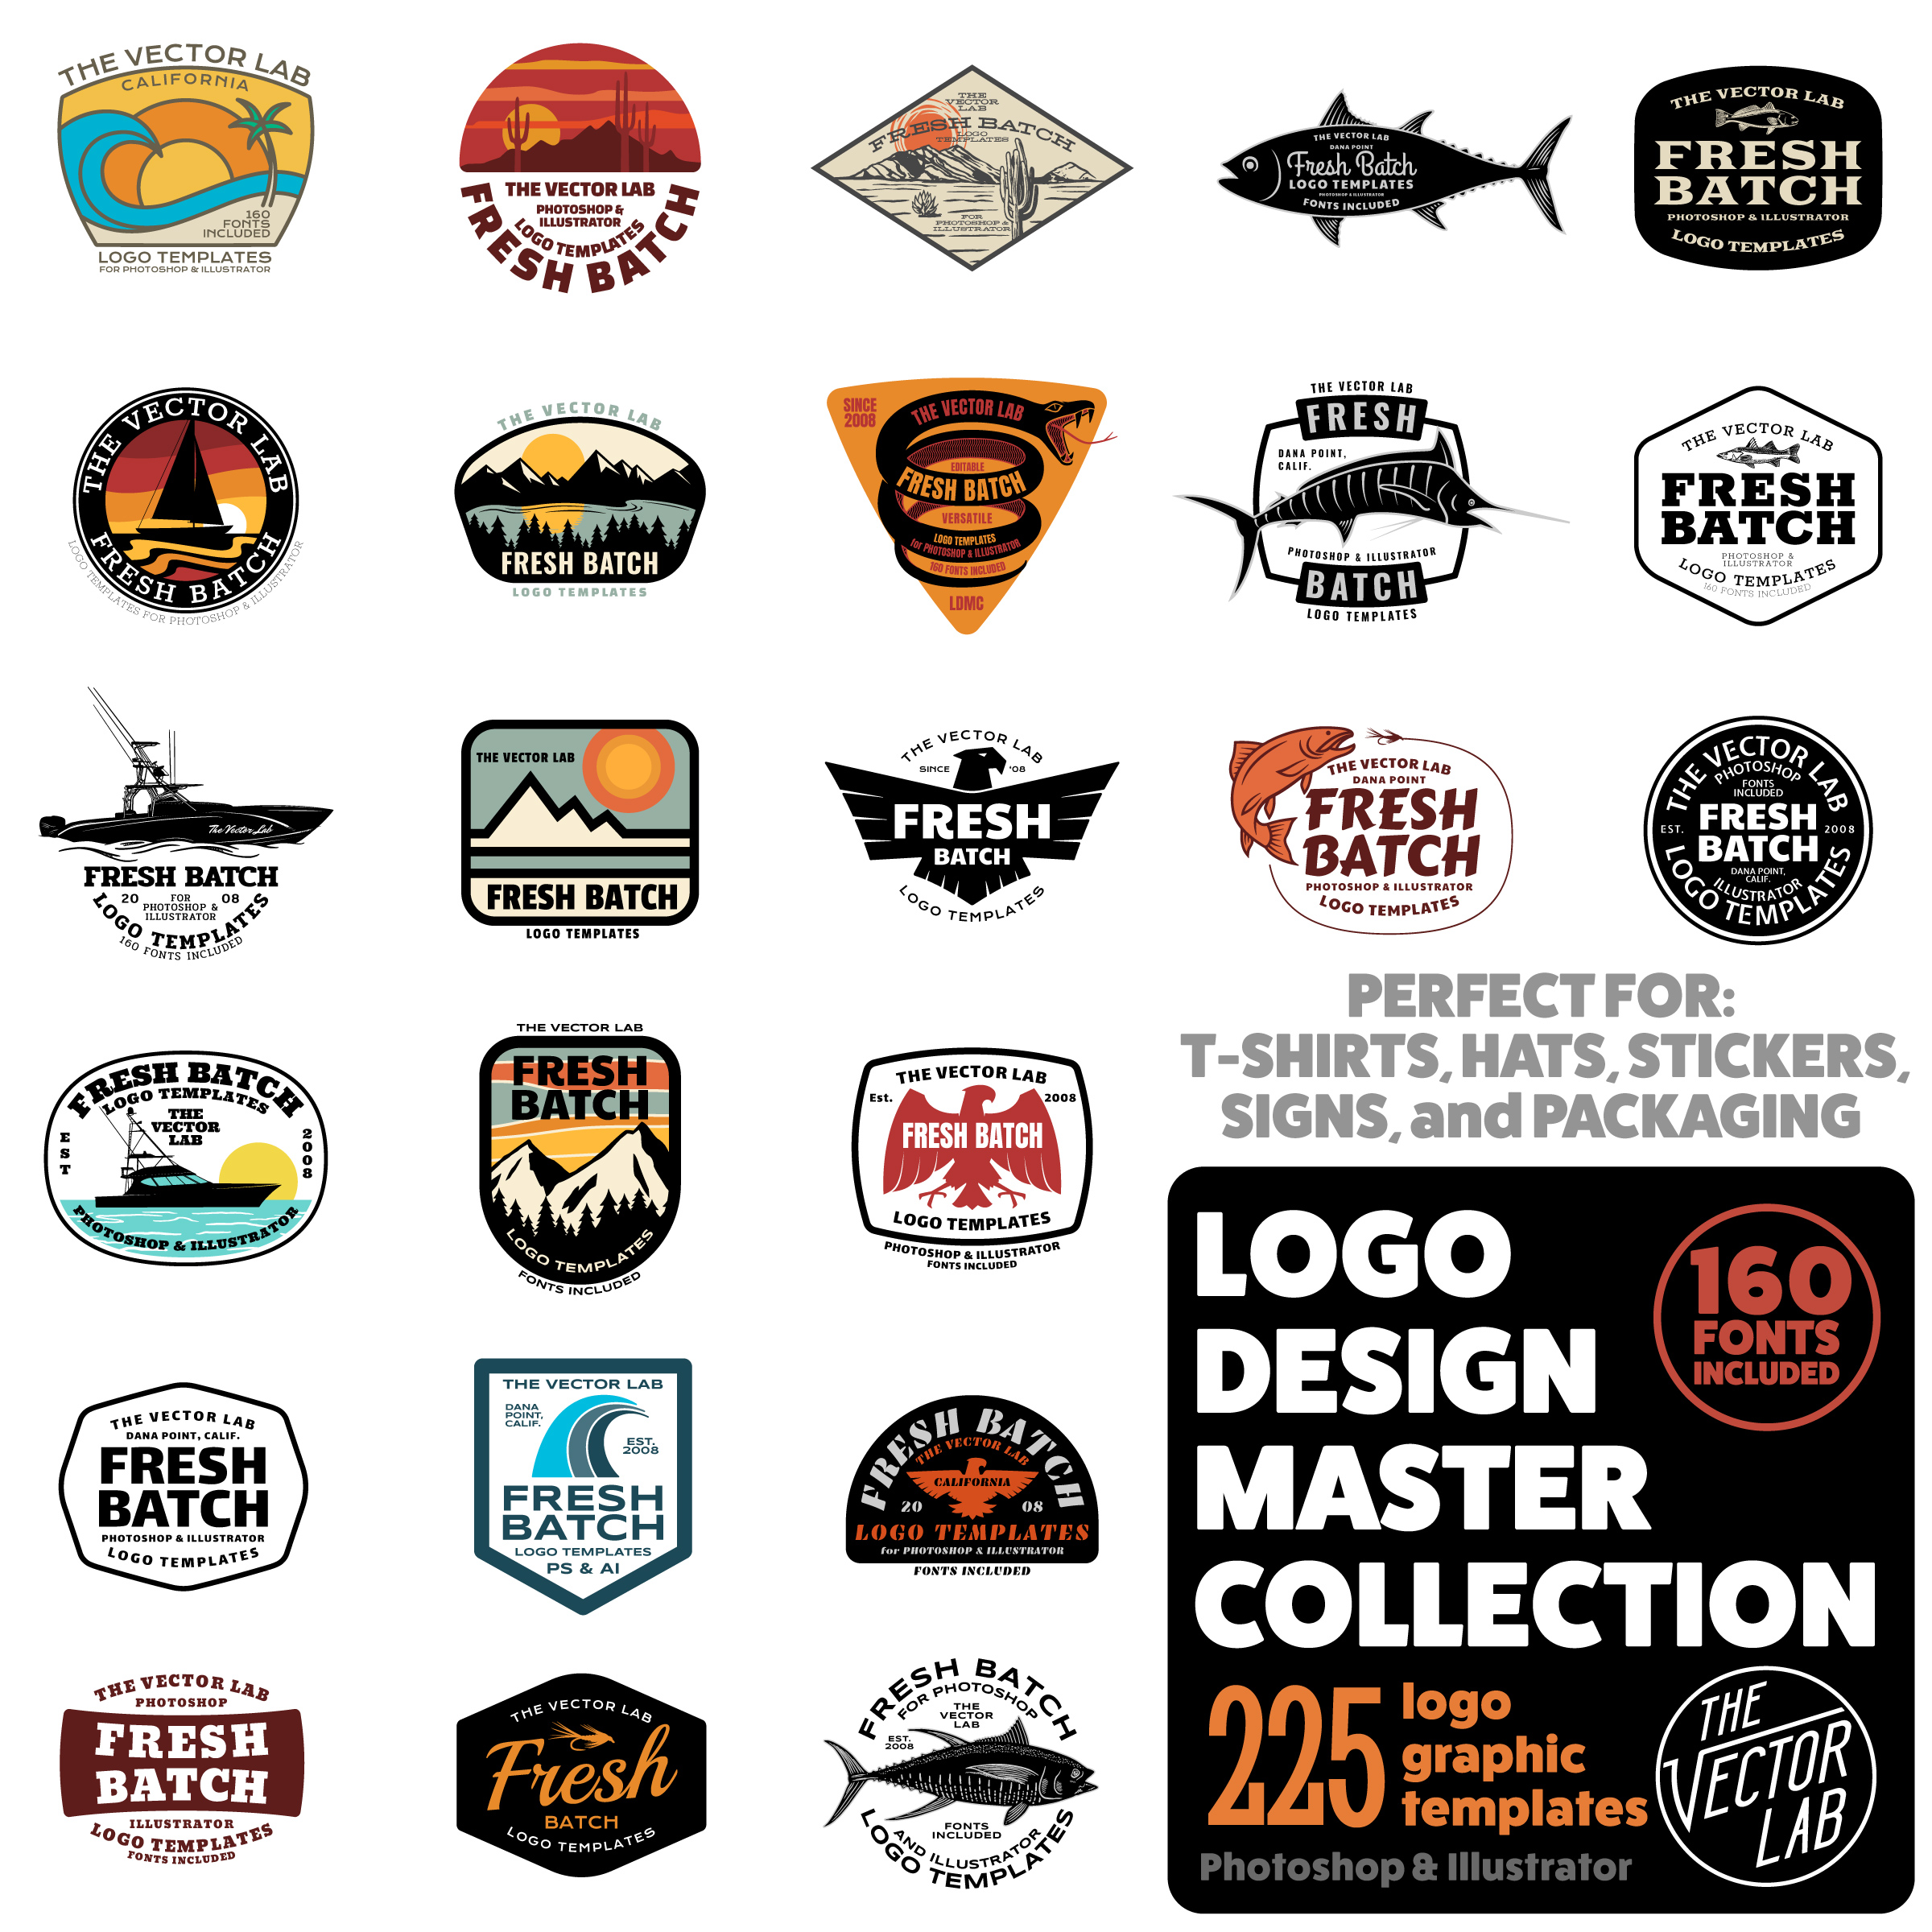 LOGO-DESIGN-MASTER-COLLECTION-DECEMBER-2018.jpg